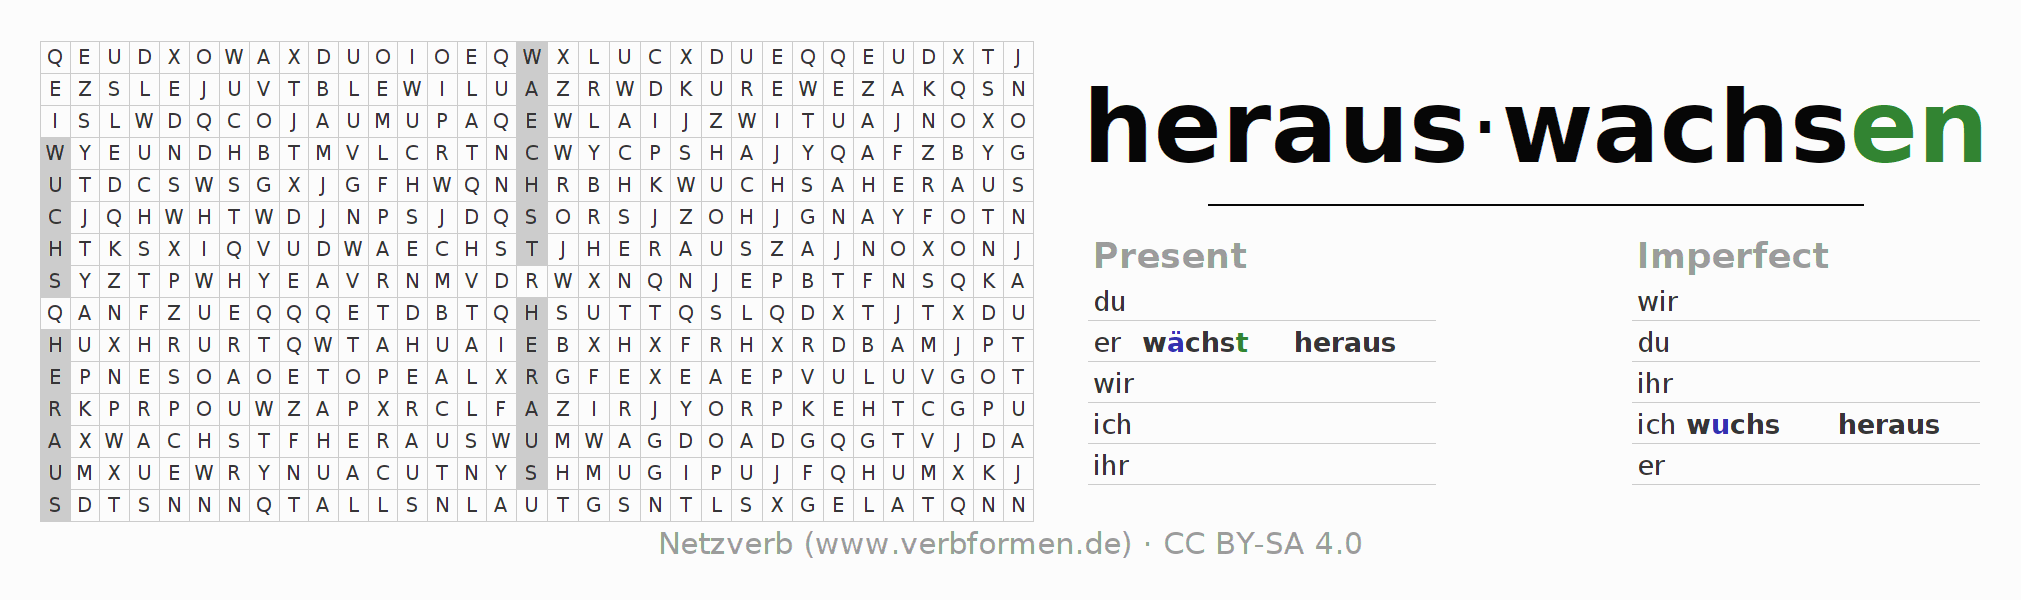 Word search puzzle for the conjugation of the verb herauswachsen